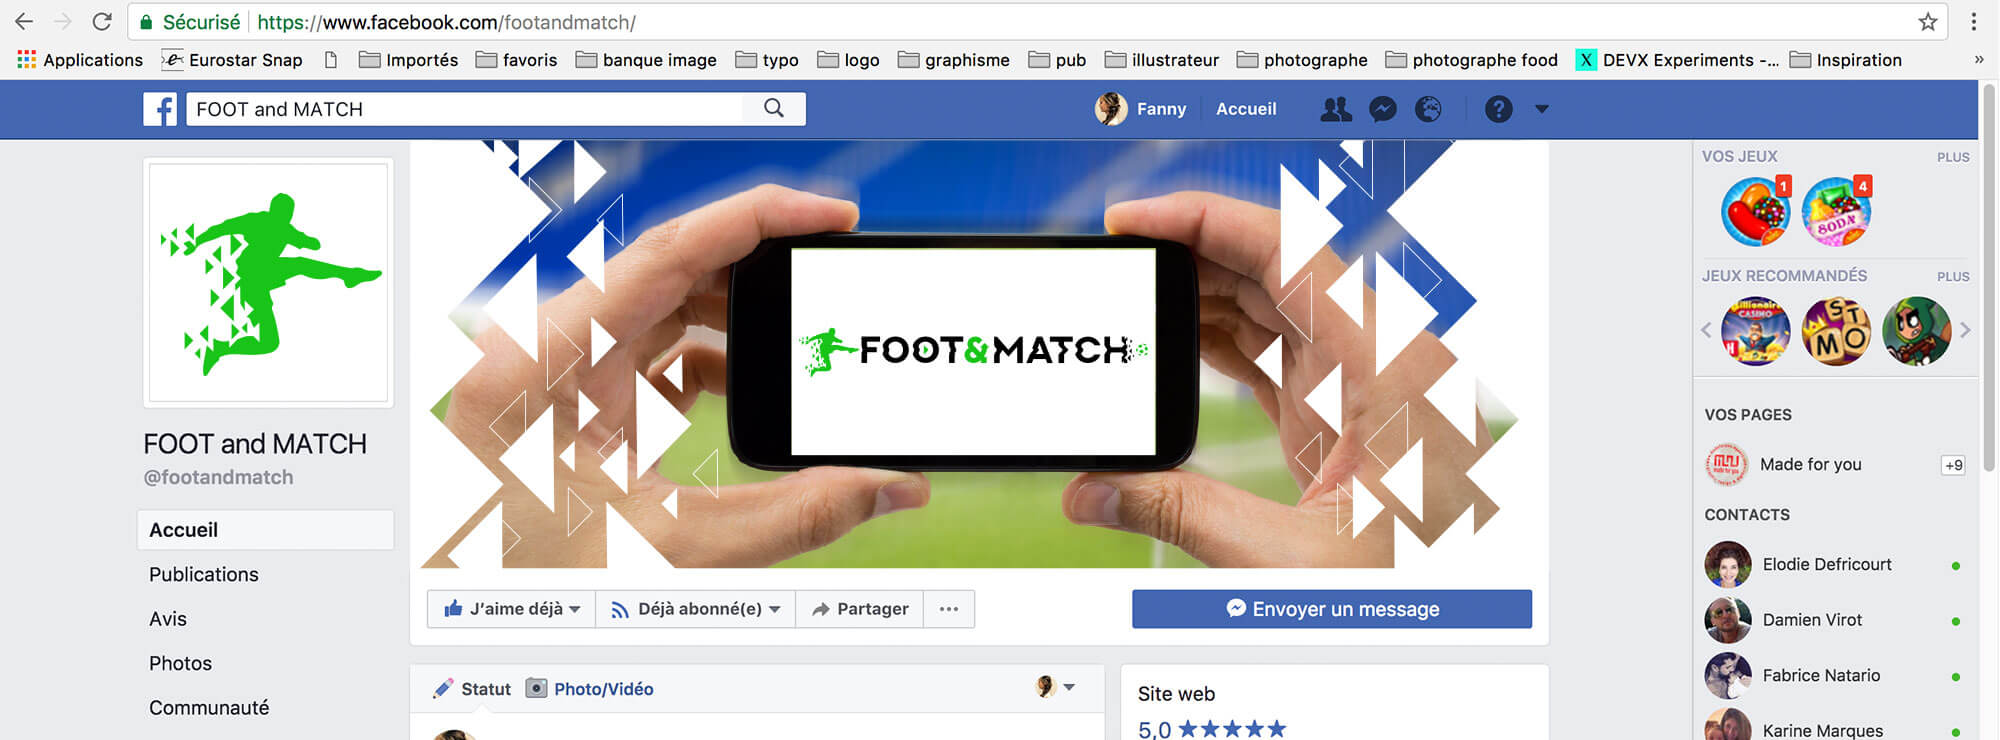 05.foot match facebook.jpg